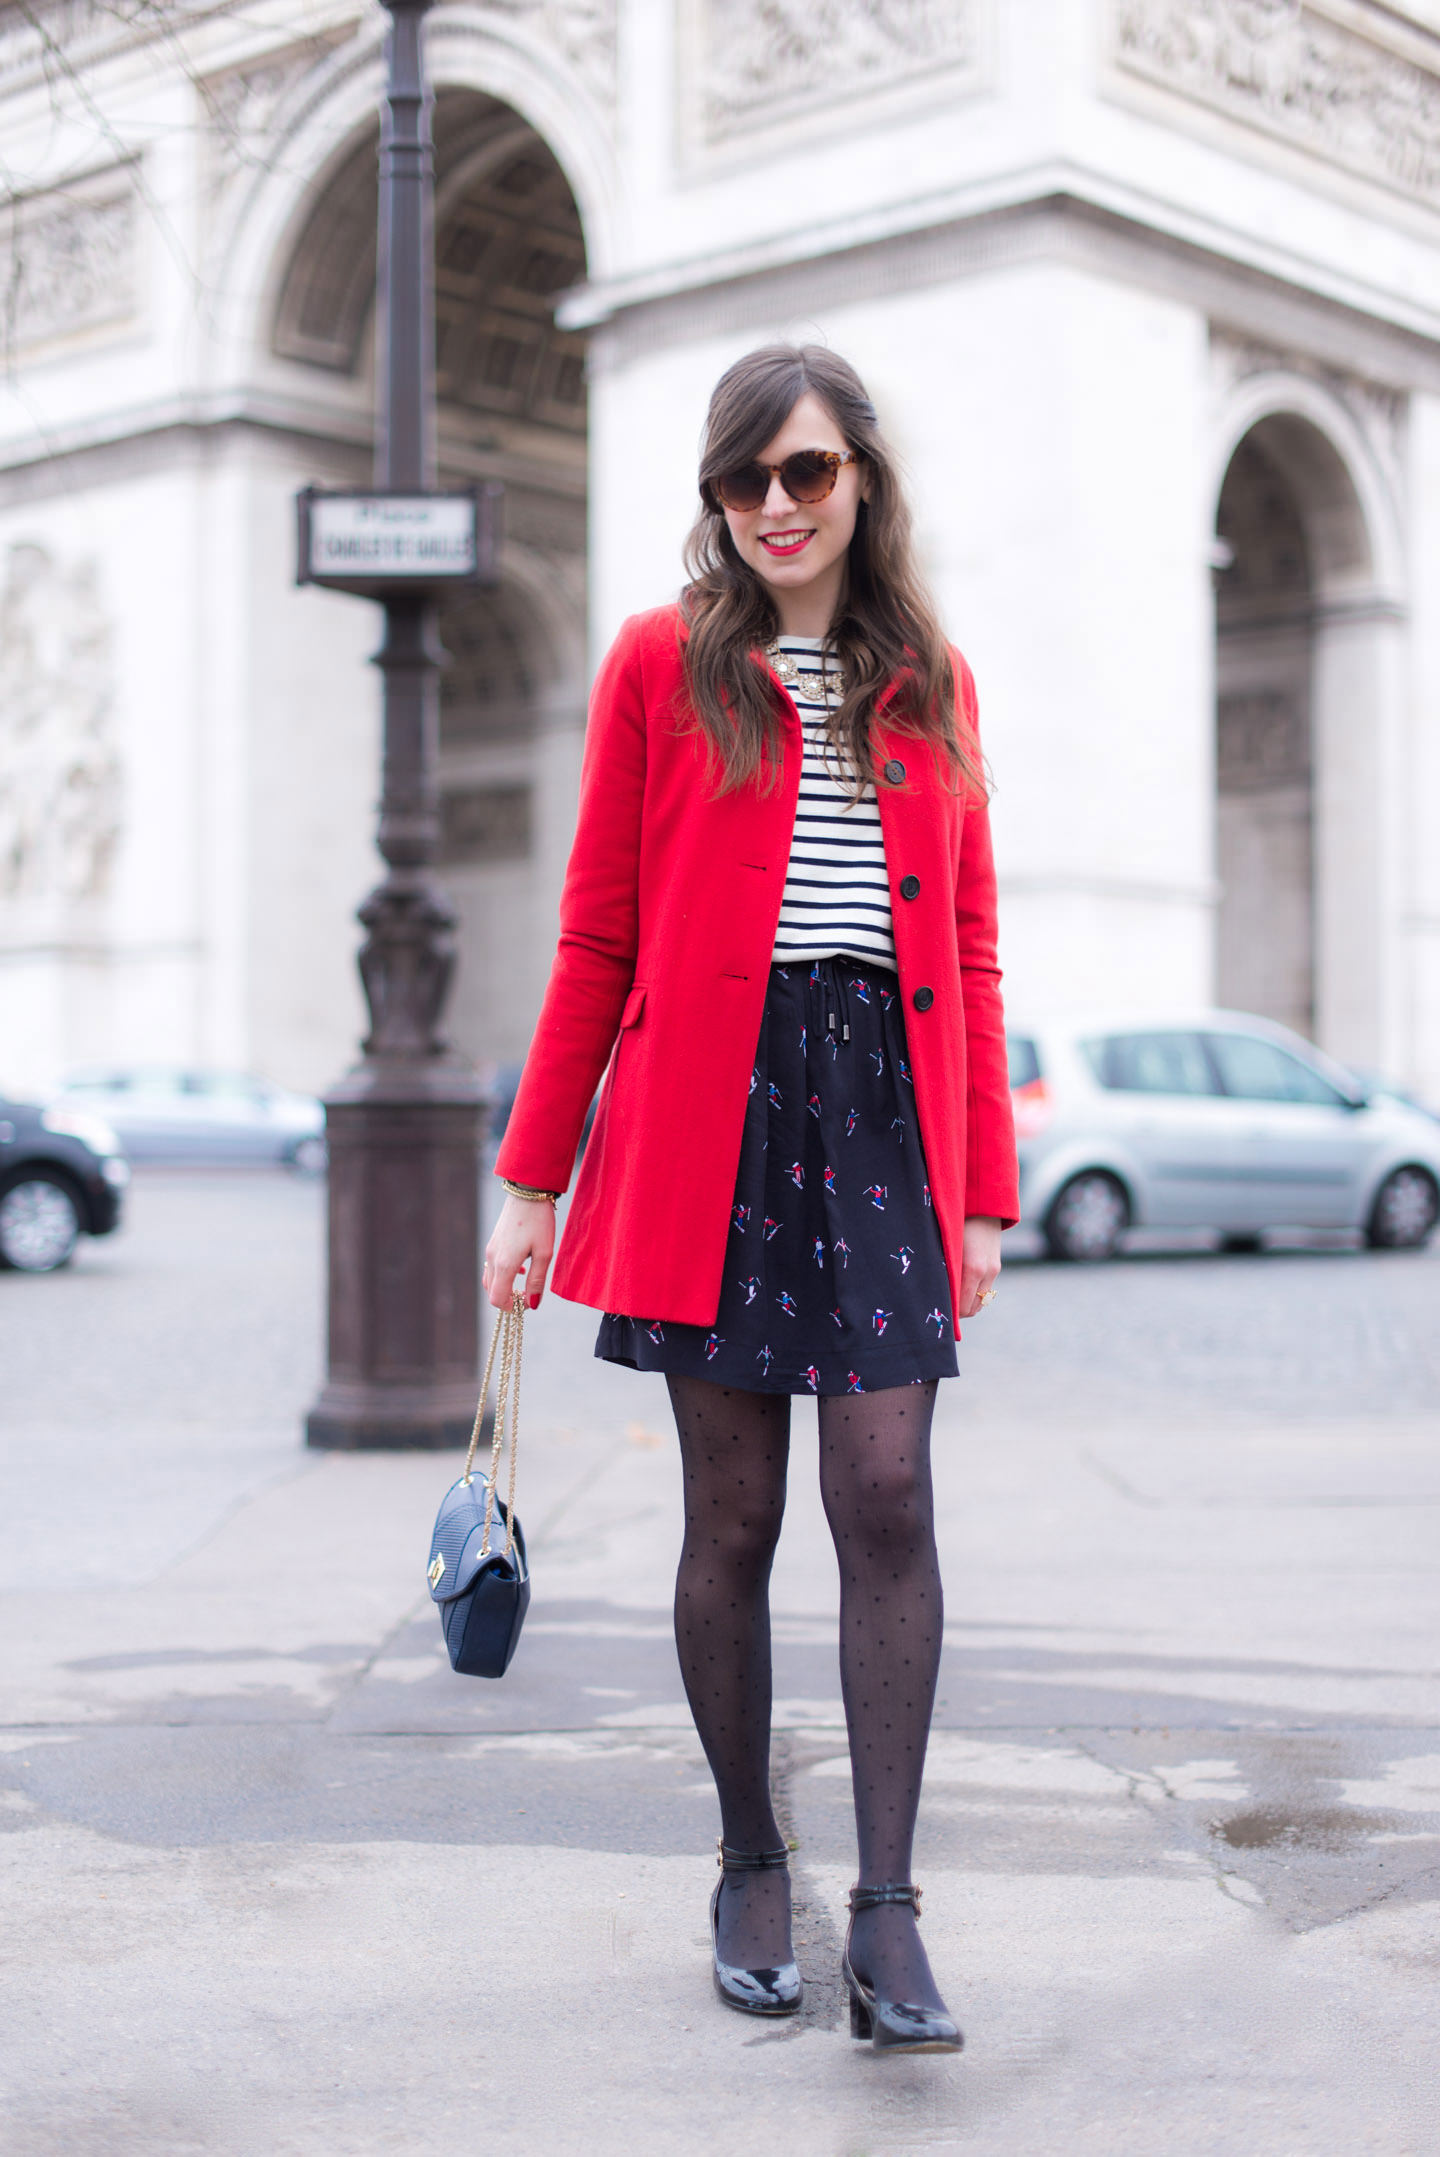 Blog-Mode-And-The-City-Looks-Au-Pied-Arc-Triomphe-Paris-6